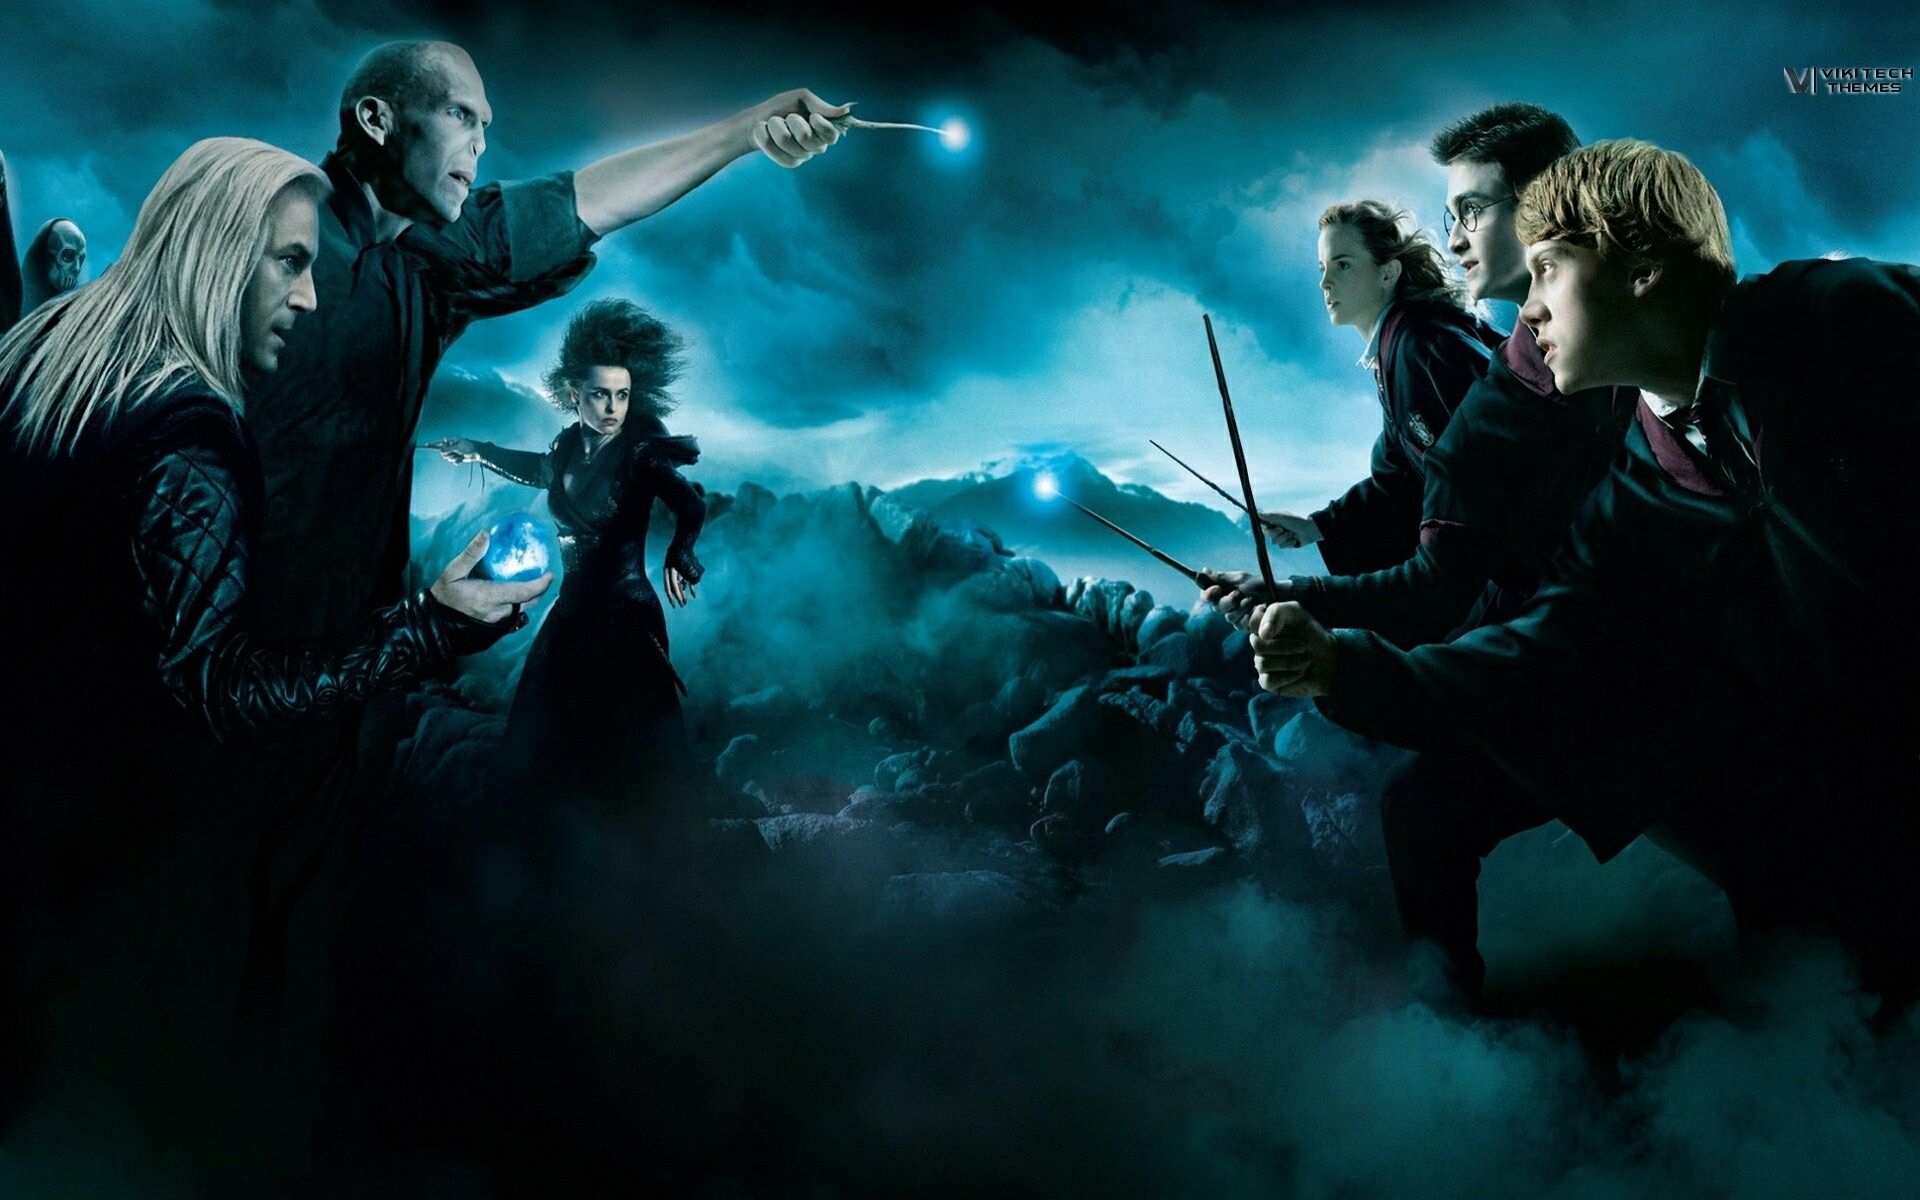 Harry Potter And The Deathly Hallows Wallpaper Walldevil Harry Potter Movies Harry Potter Wallpaper Harry Potter